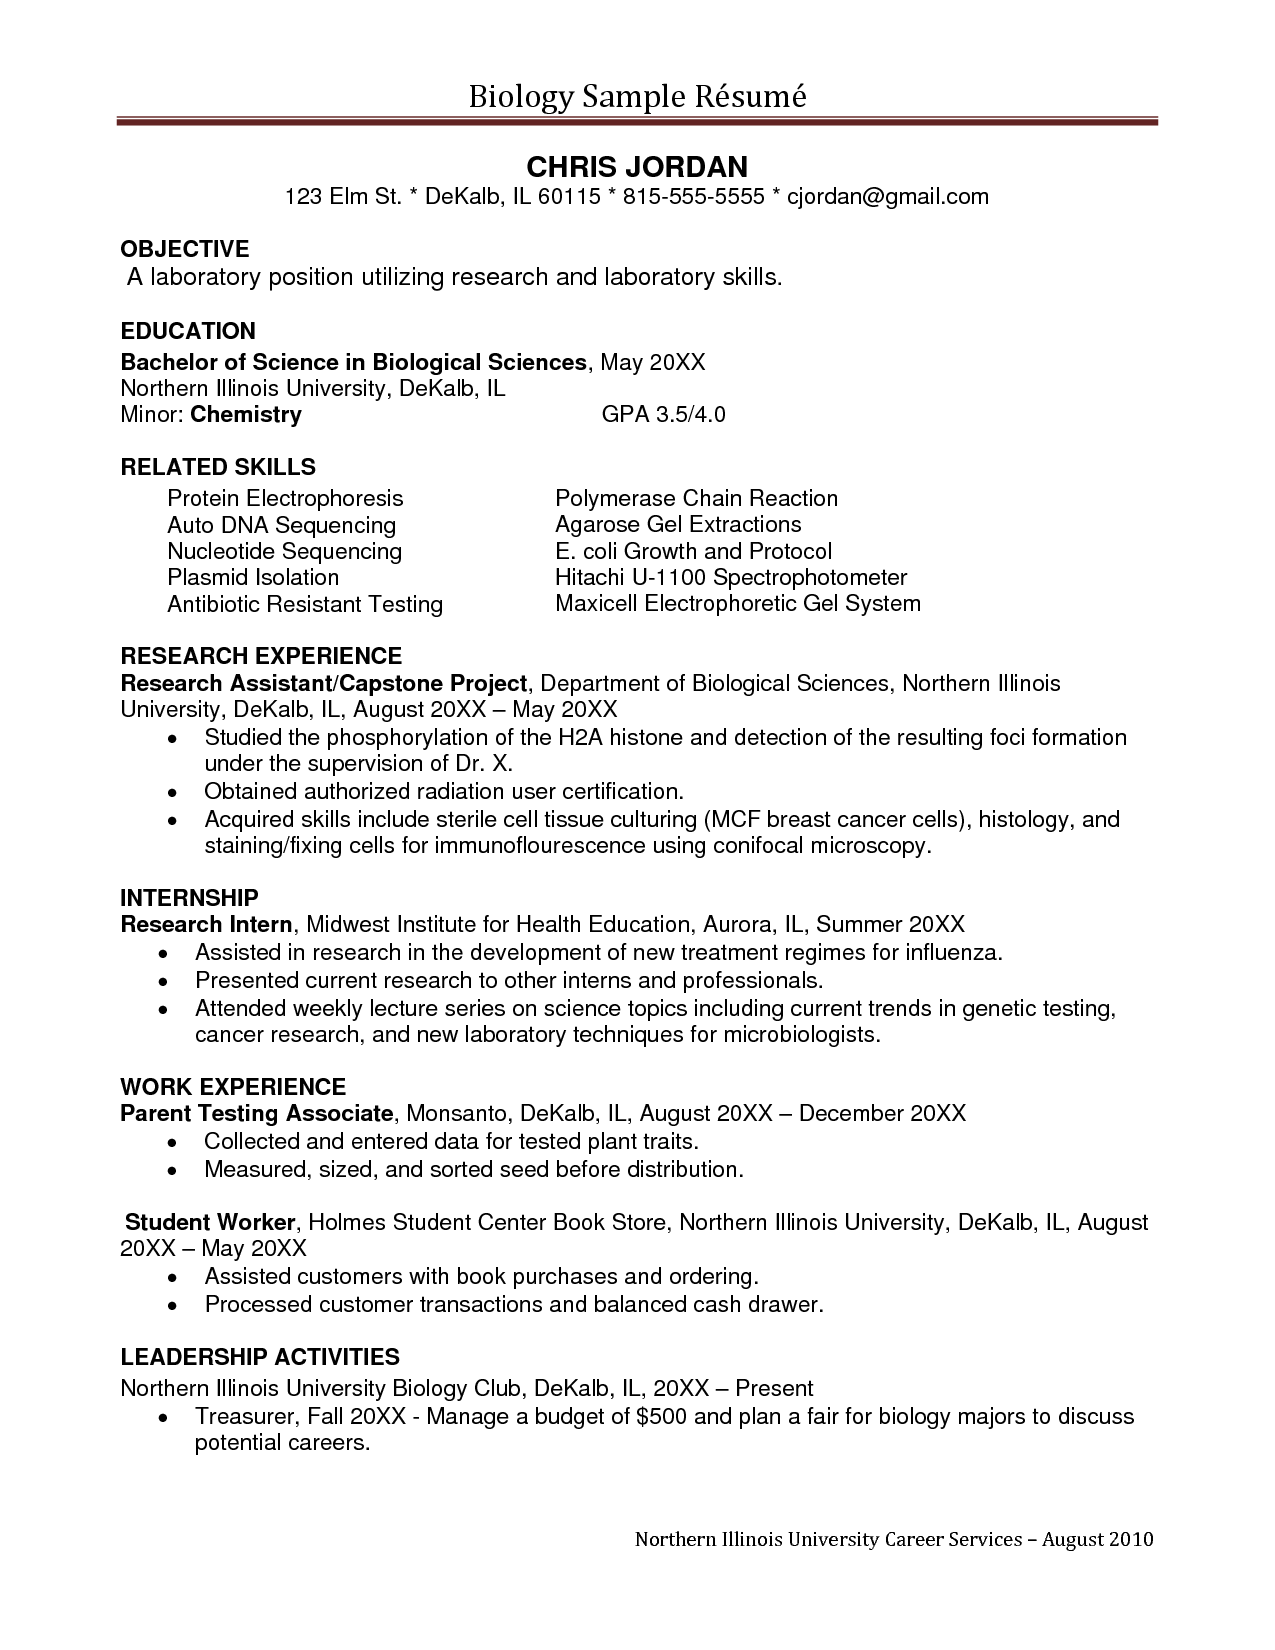 Sample Resume Adorable Sample Undergraduate Research Assistant Resume Sampleĺ Decorating Design